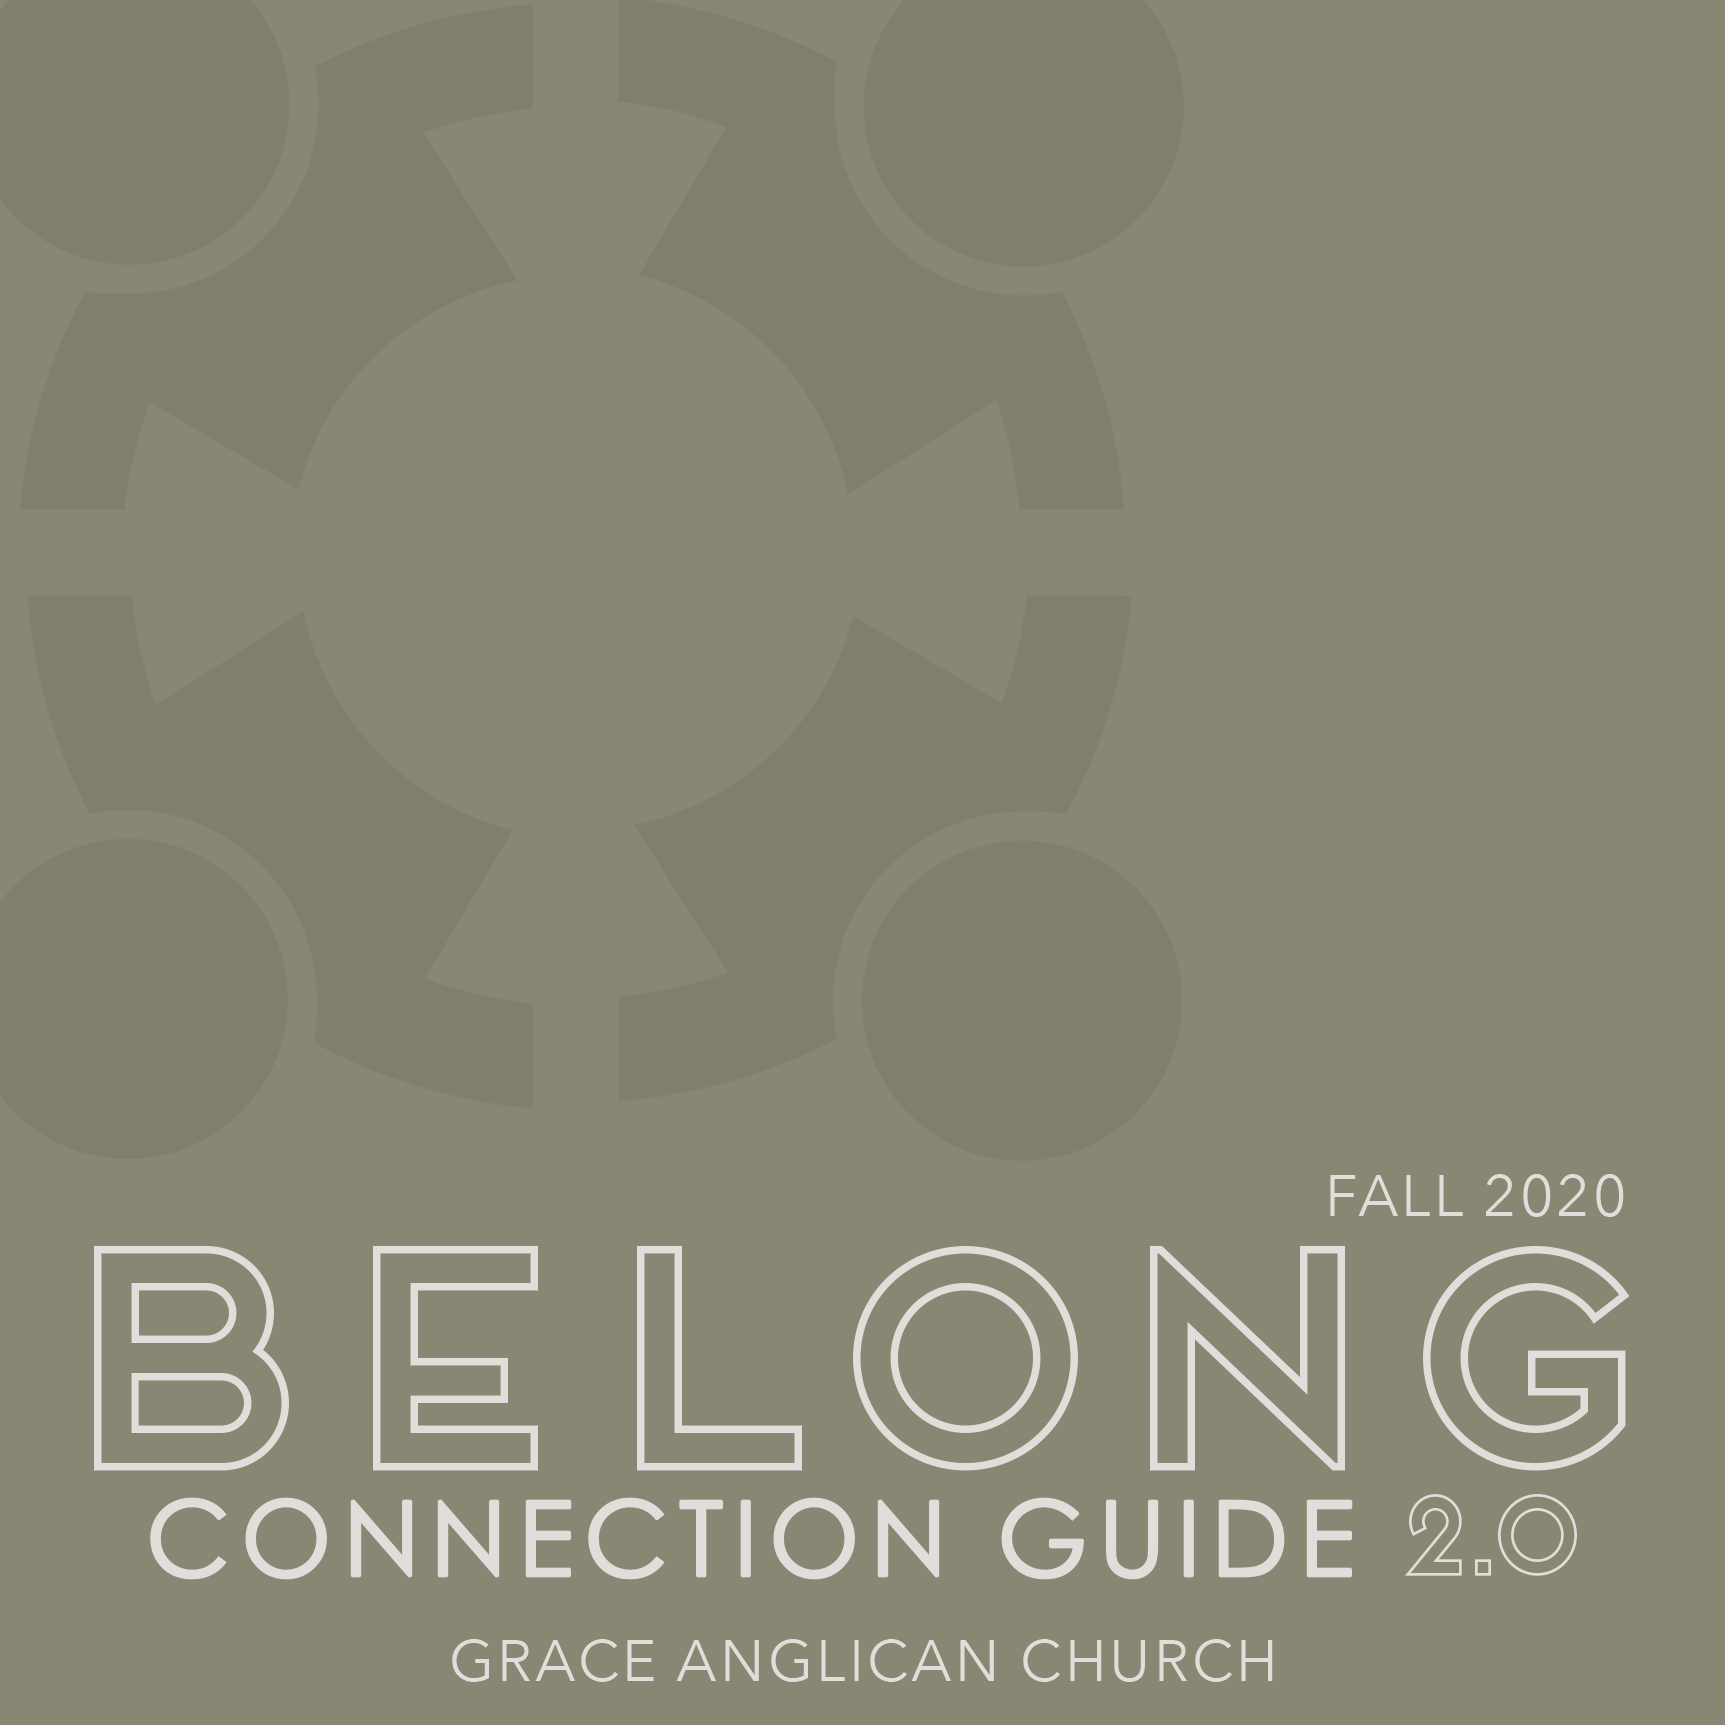 connectionguidecoverfall2020cover